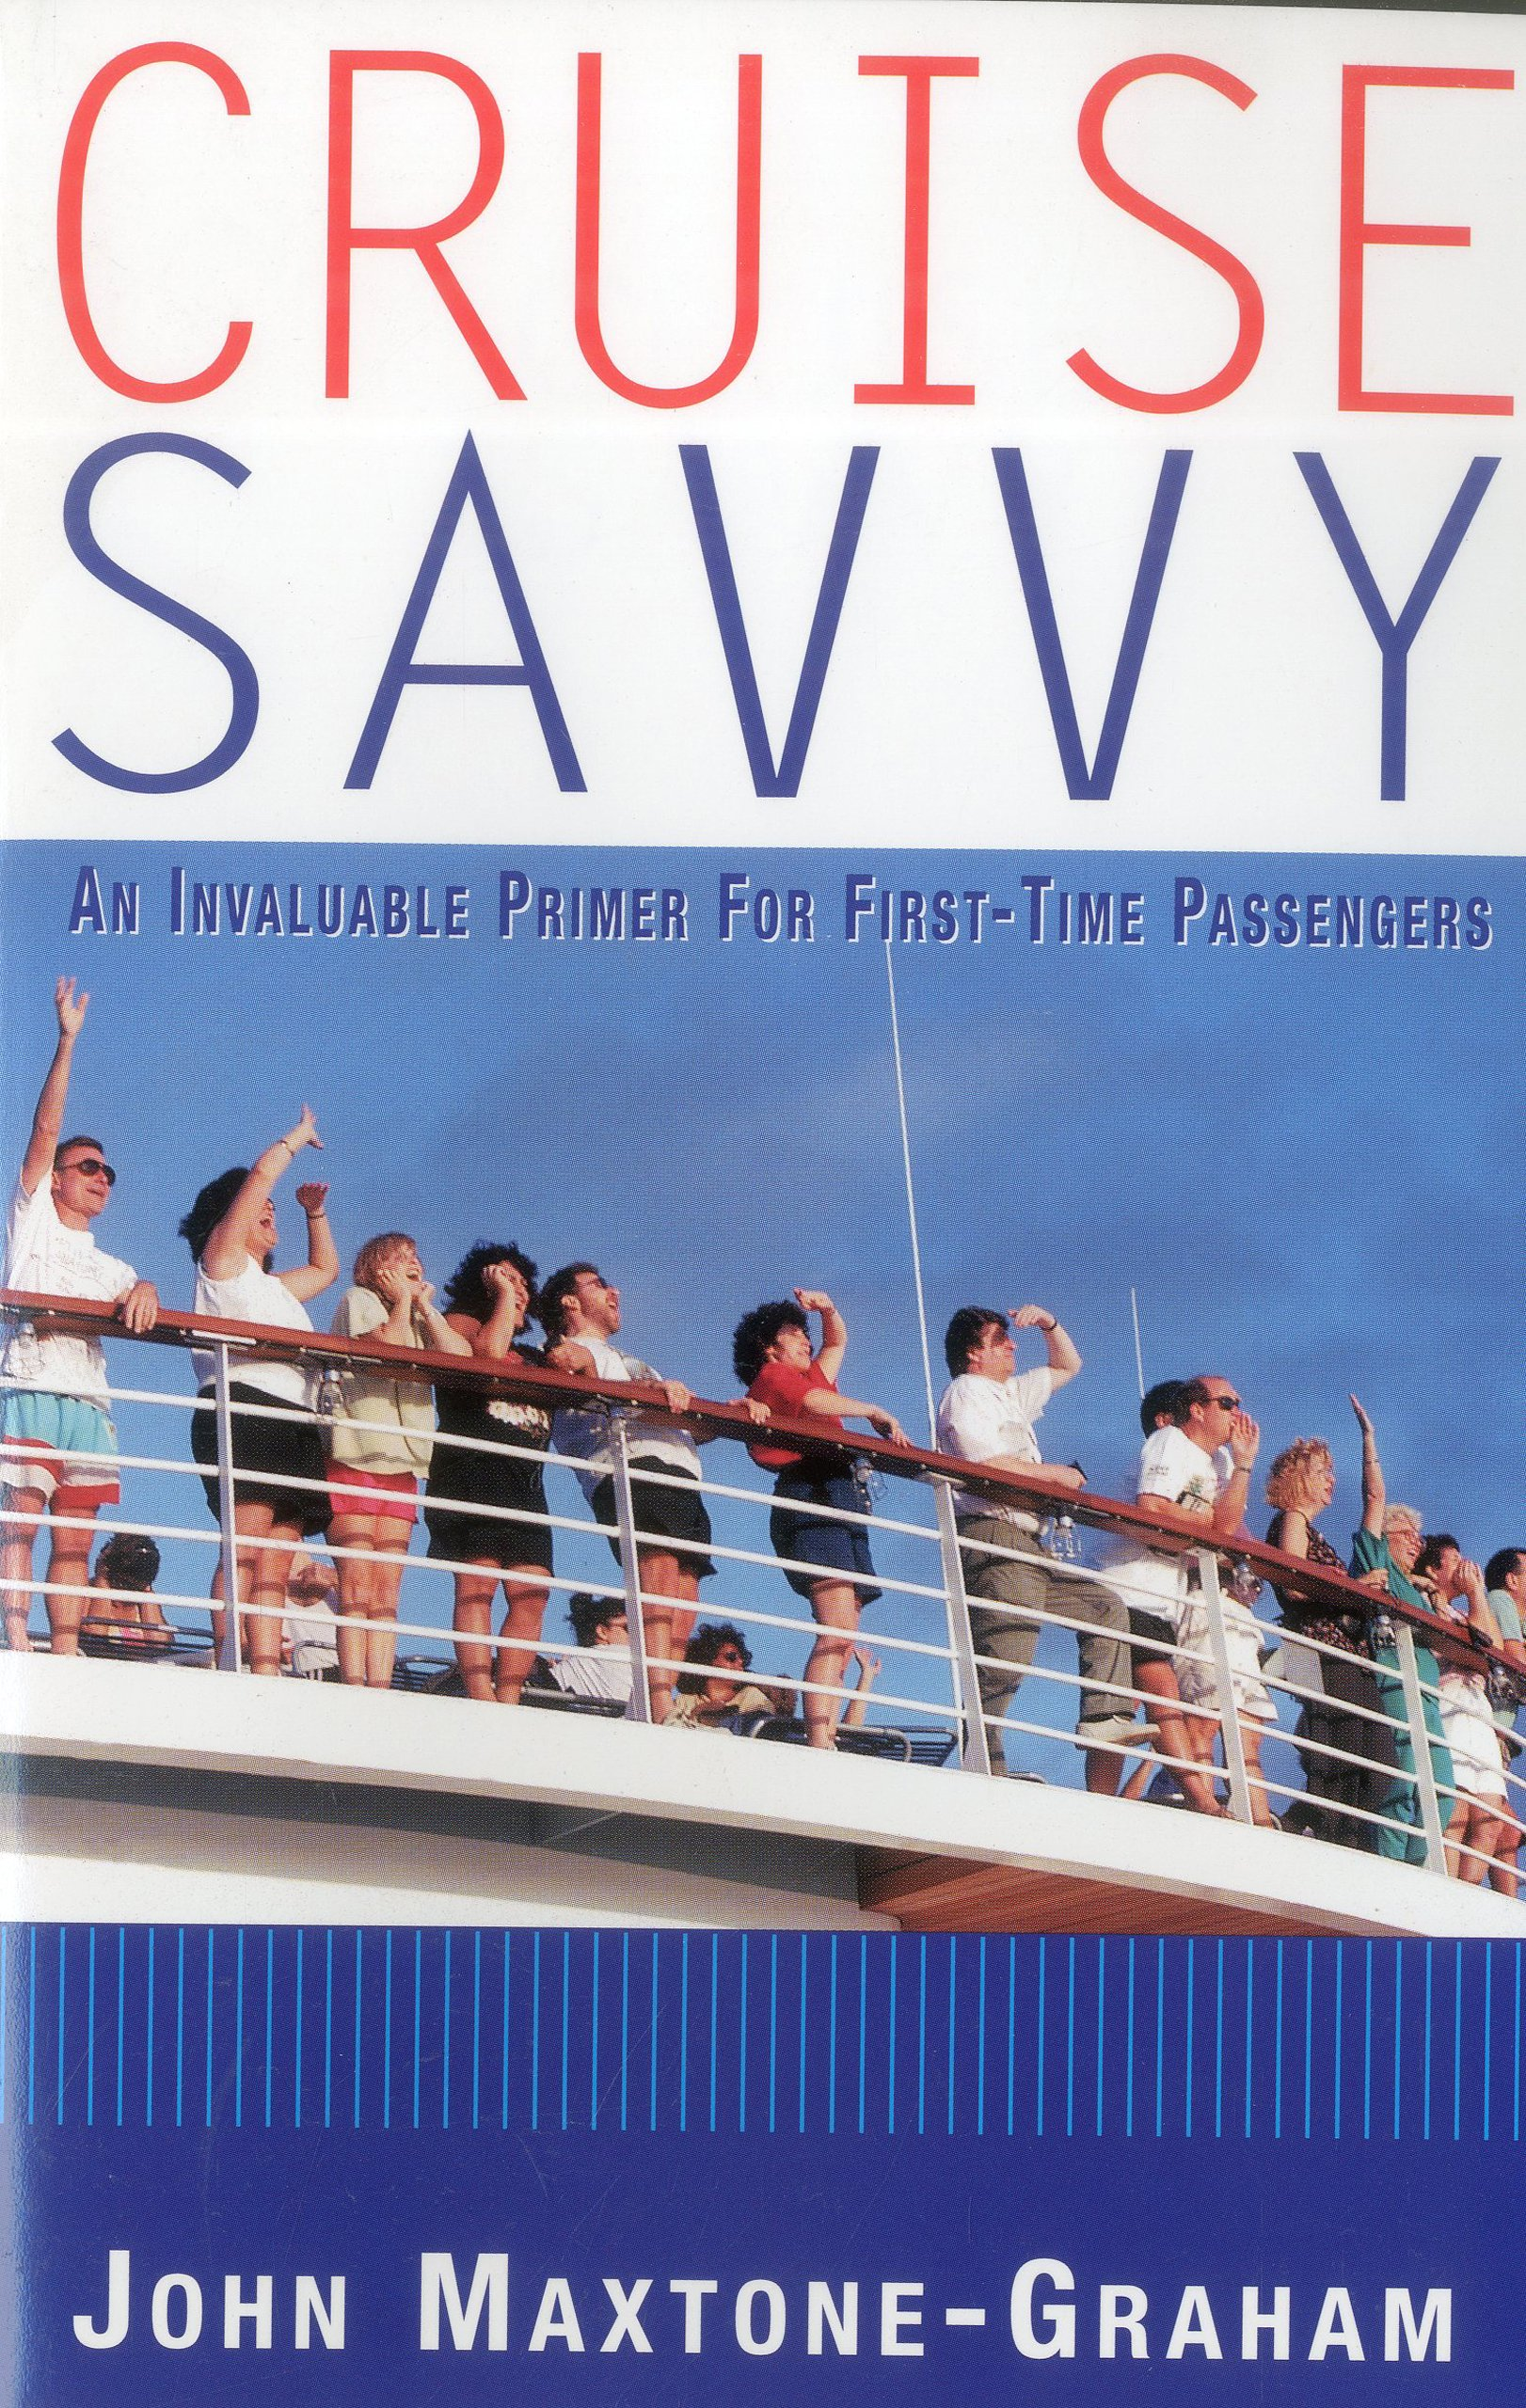 Cruise Savvy: An Invaluable Primer for First Time Passengers